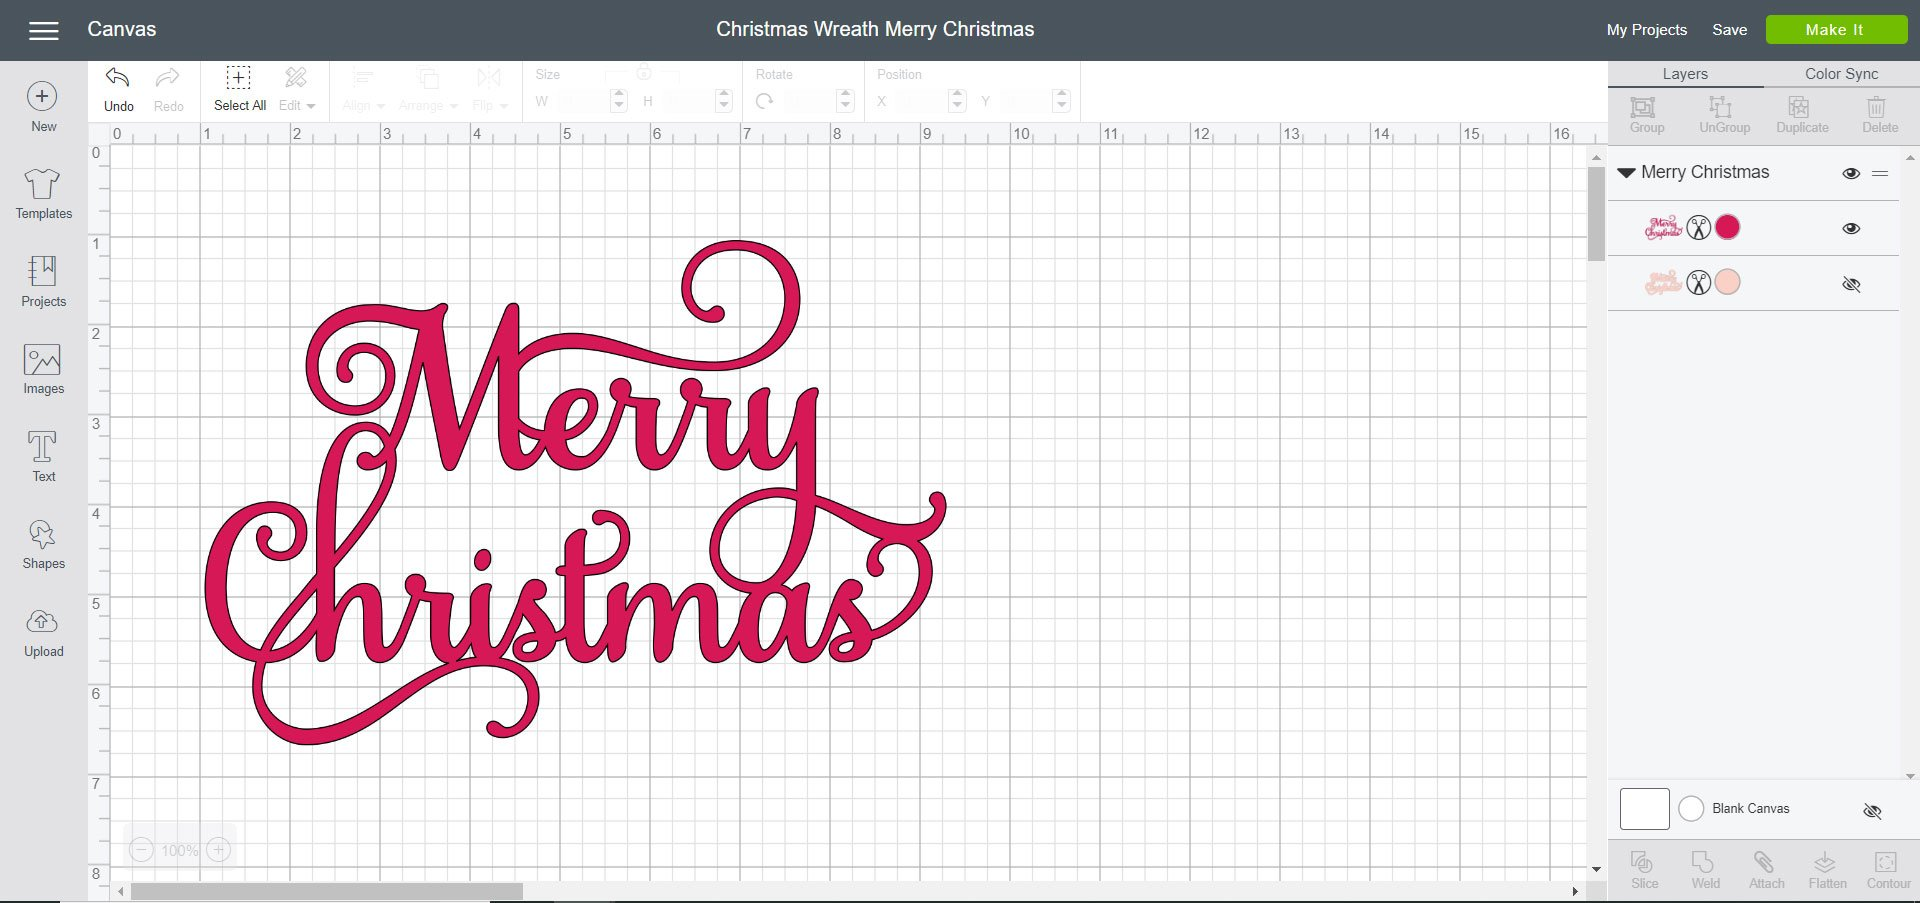 Cricut Design Space File - Christmas Wreath Merry Christmas